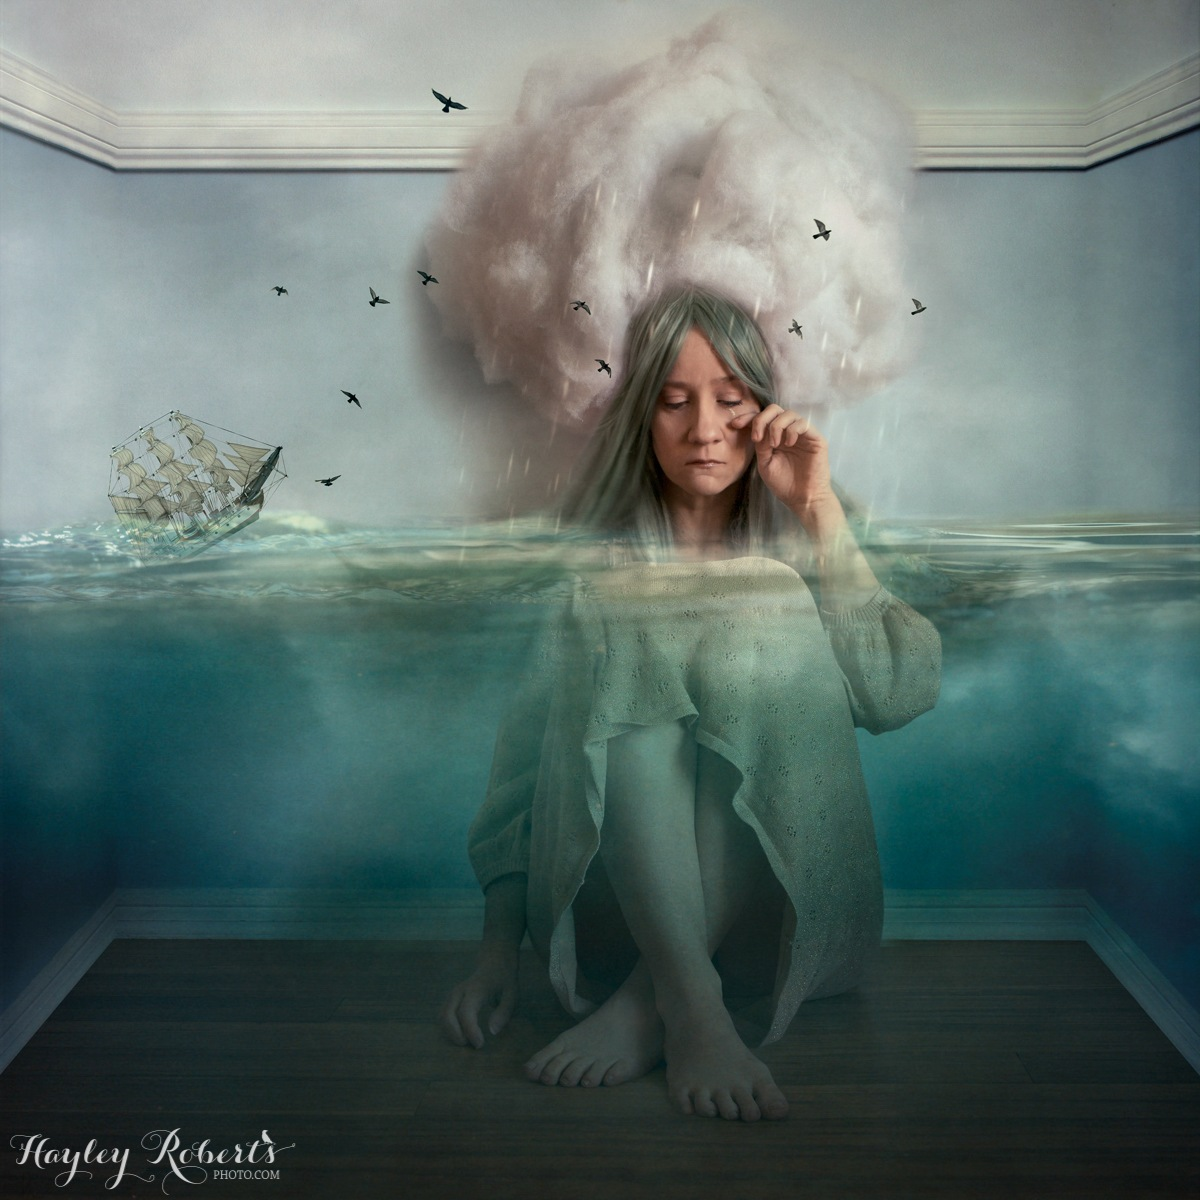 The Blue Girl by Hayley Roberts